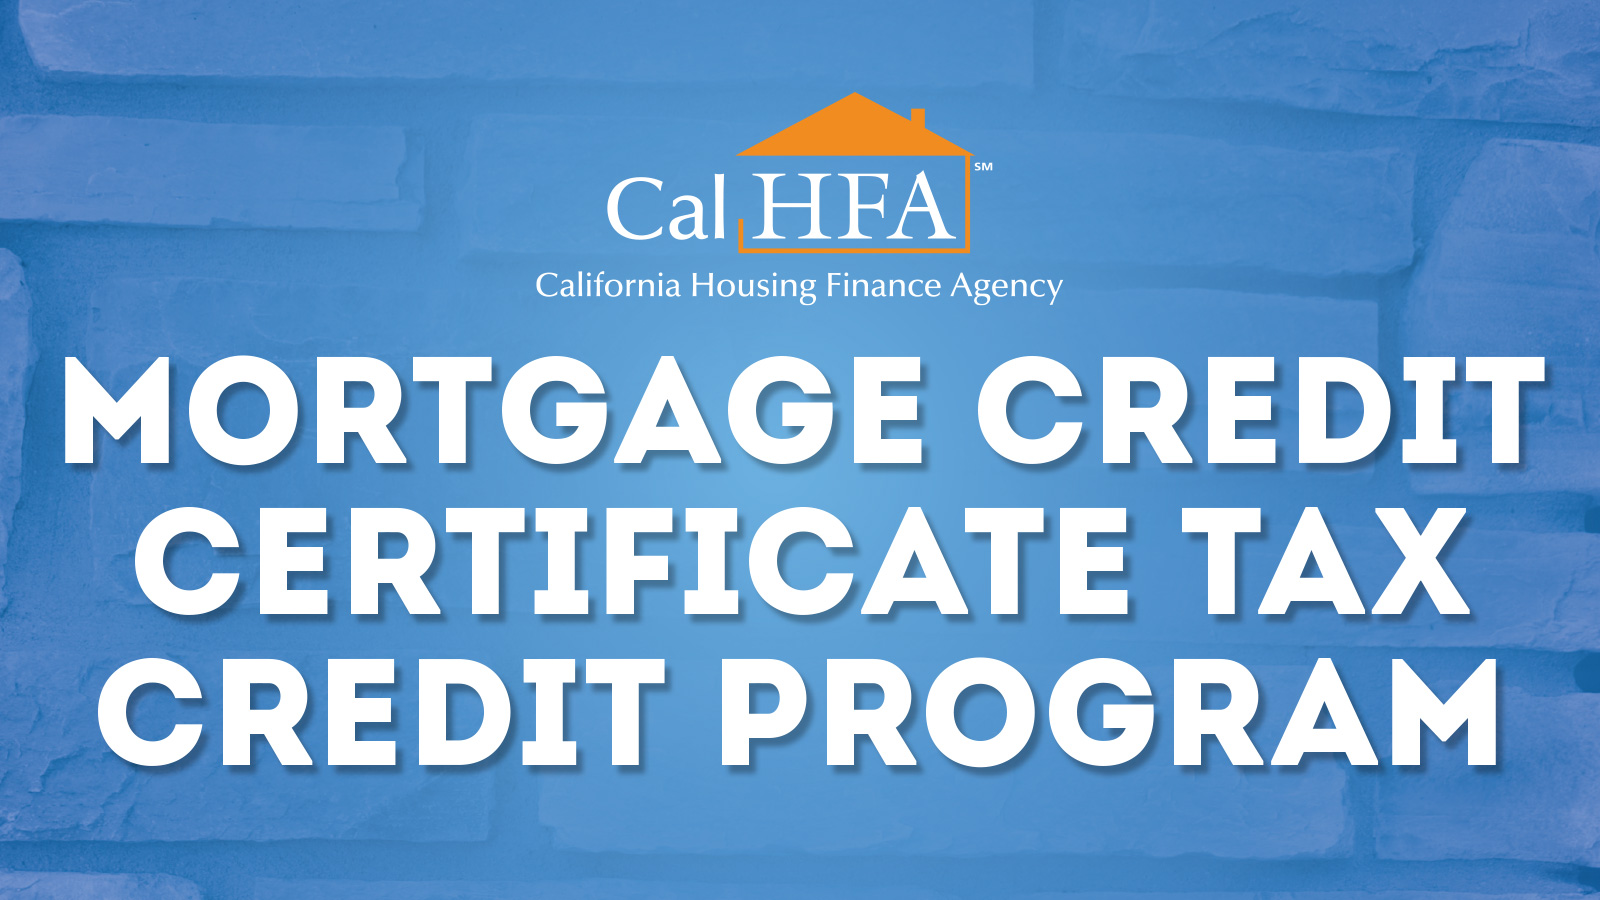 Downpayment Assistance Program Mortgage Credit Certificate Tax